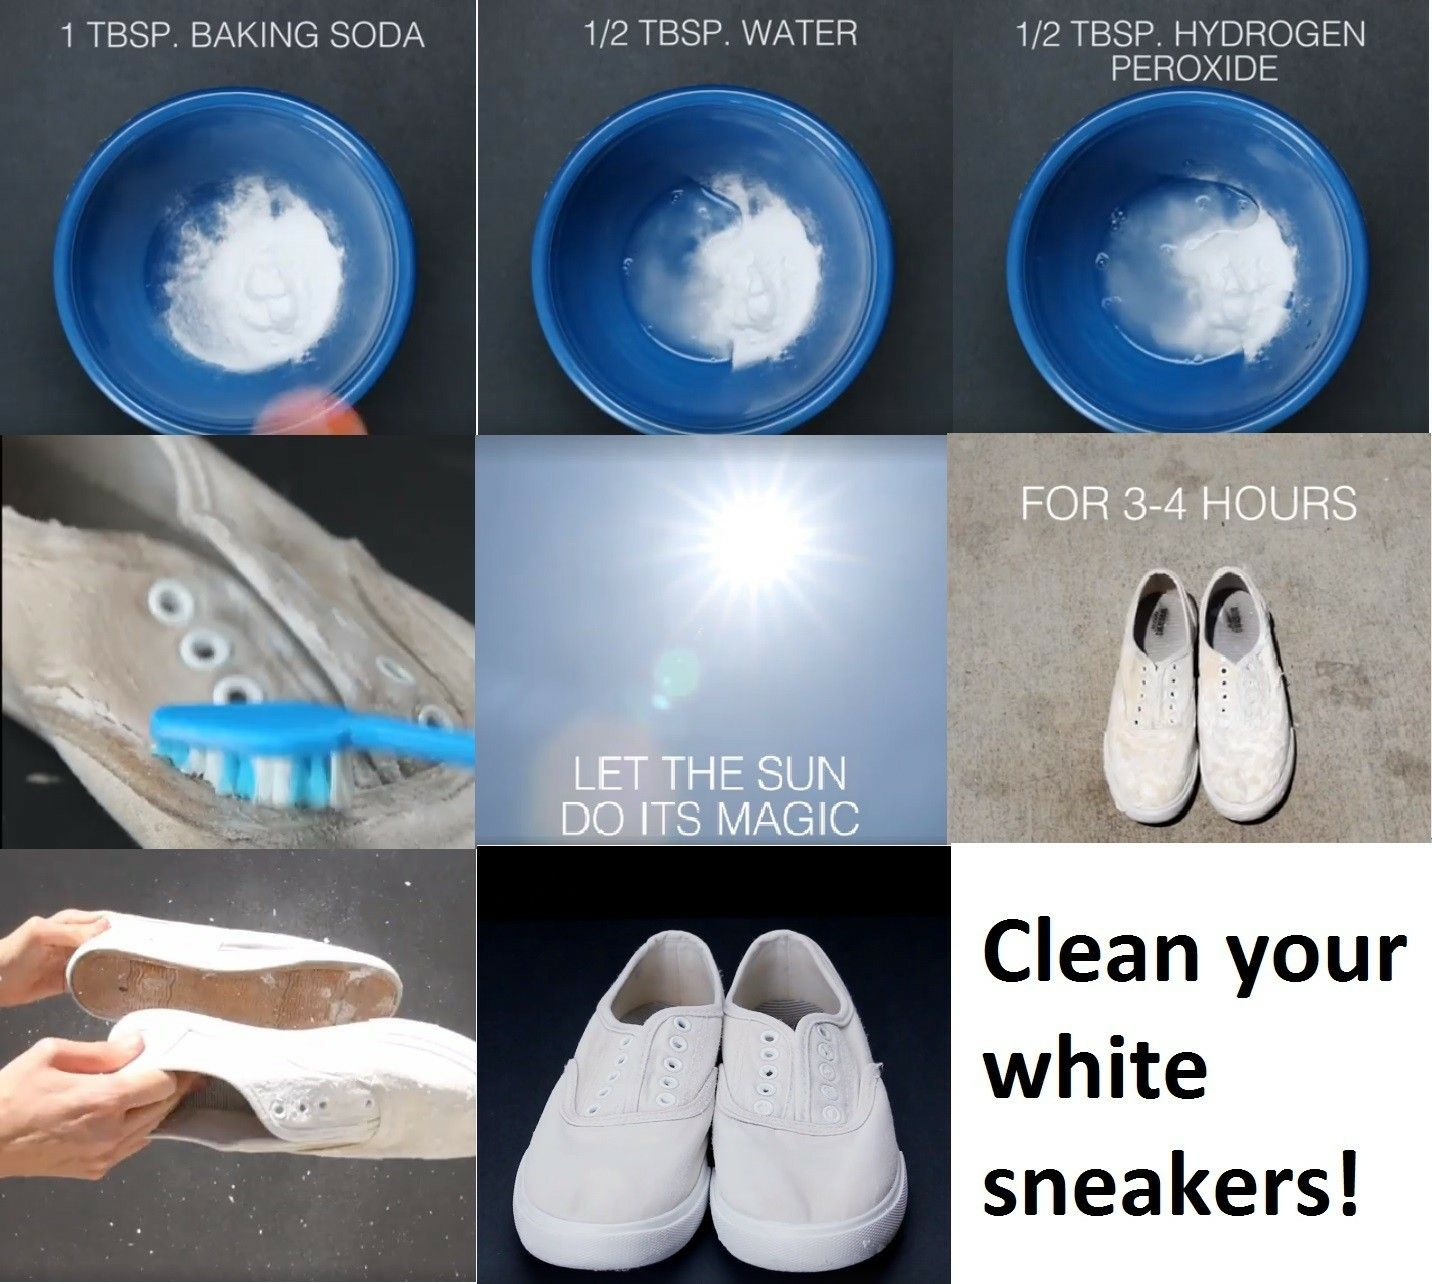 aa3c3a5453d531faab26ee3bee55094c - How To Get Rid Of Blue Stains On White Shoes